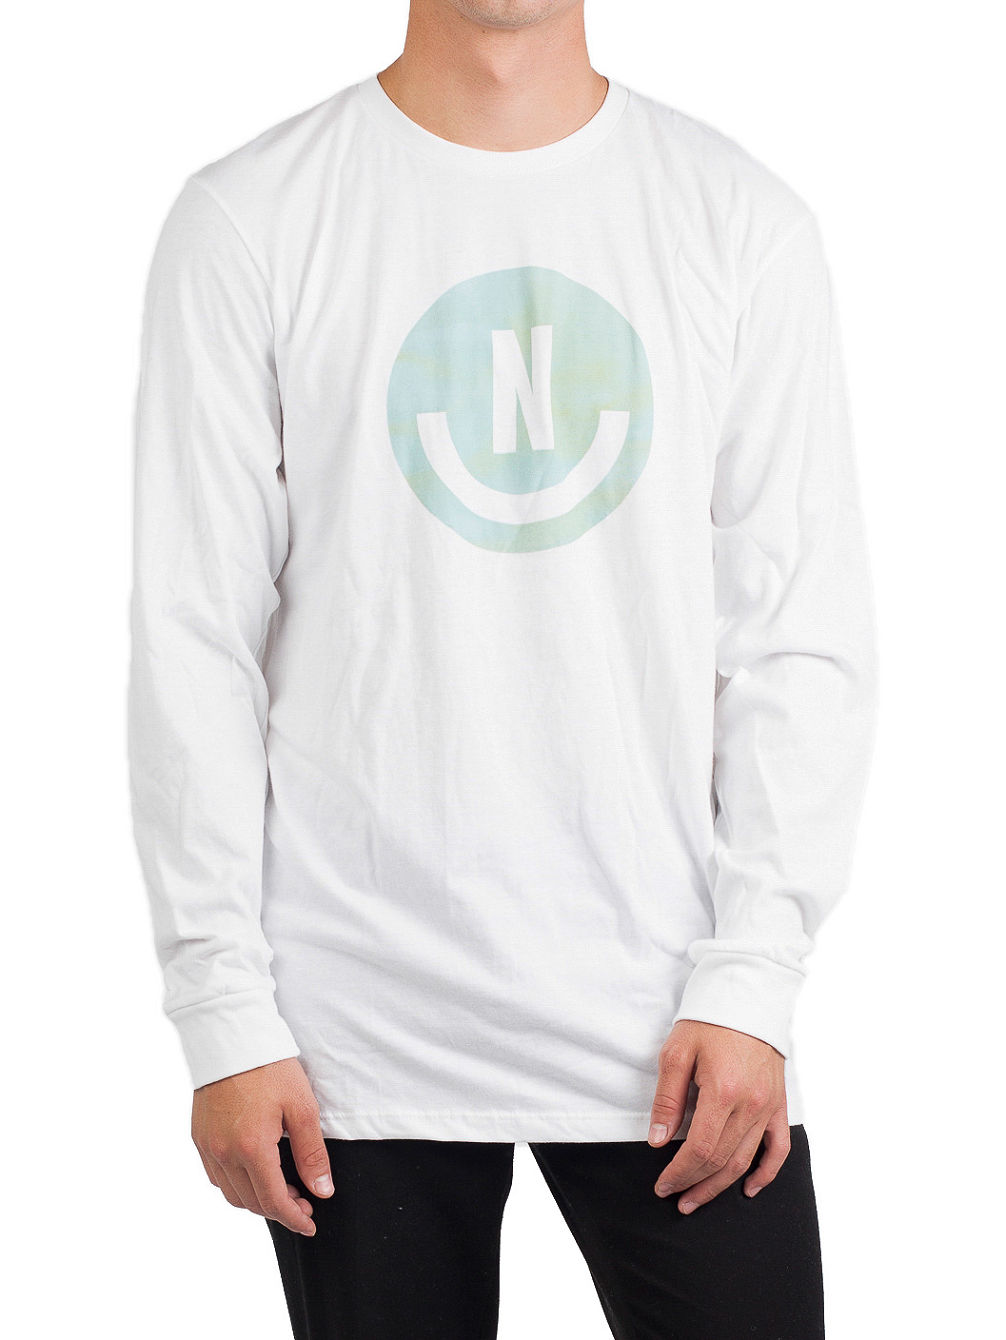 Smiley T-Shirt LS